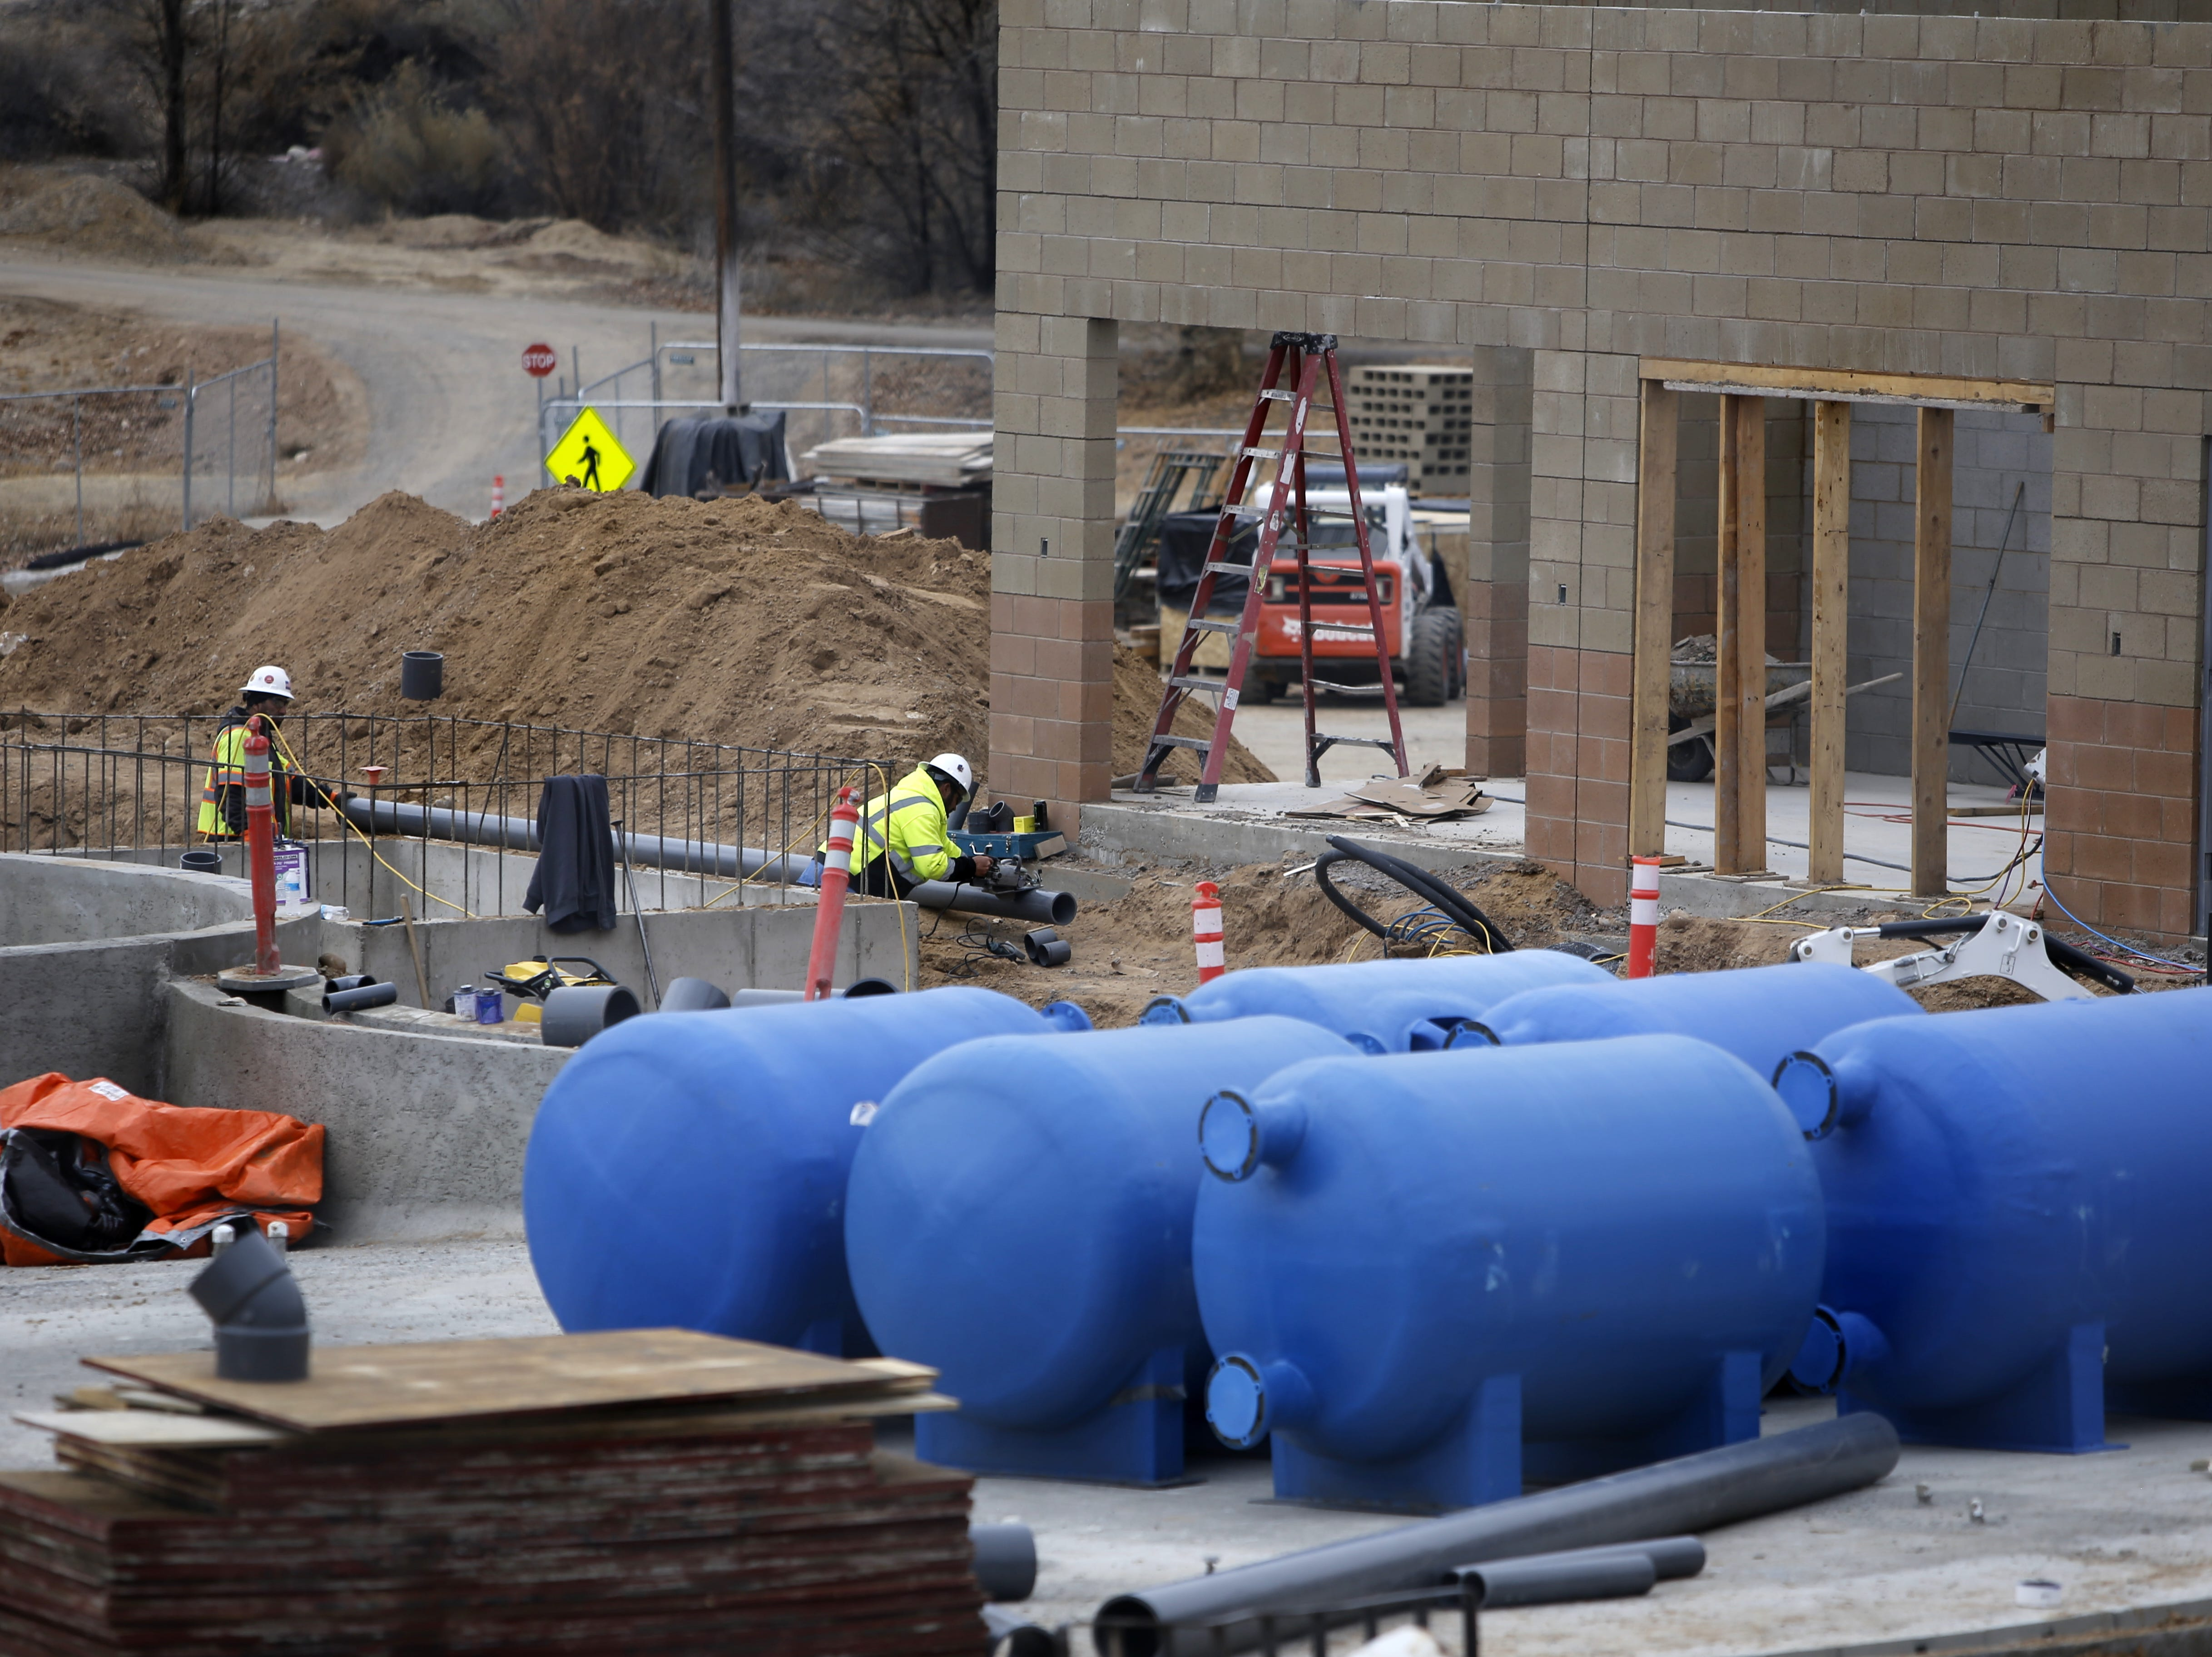 Cost of Farmington water park has increased to $8.2 million